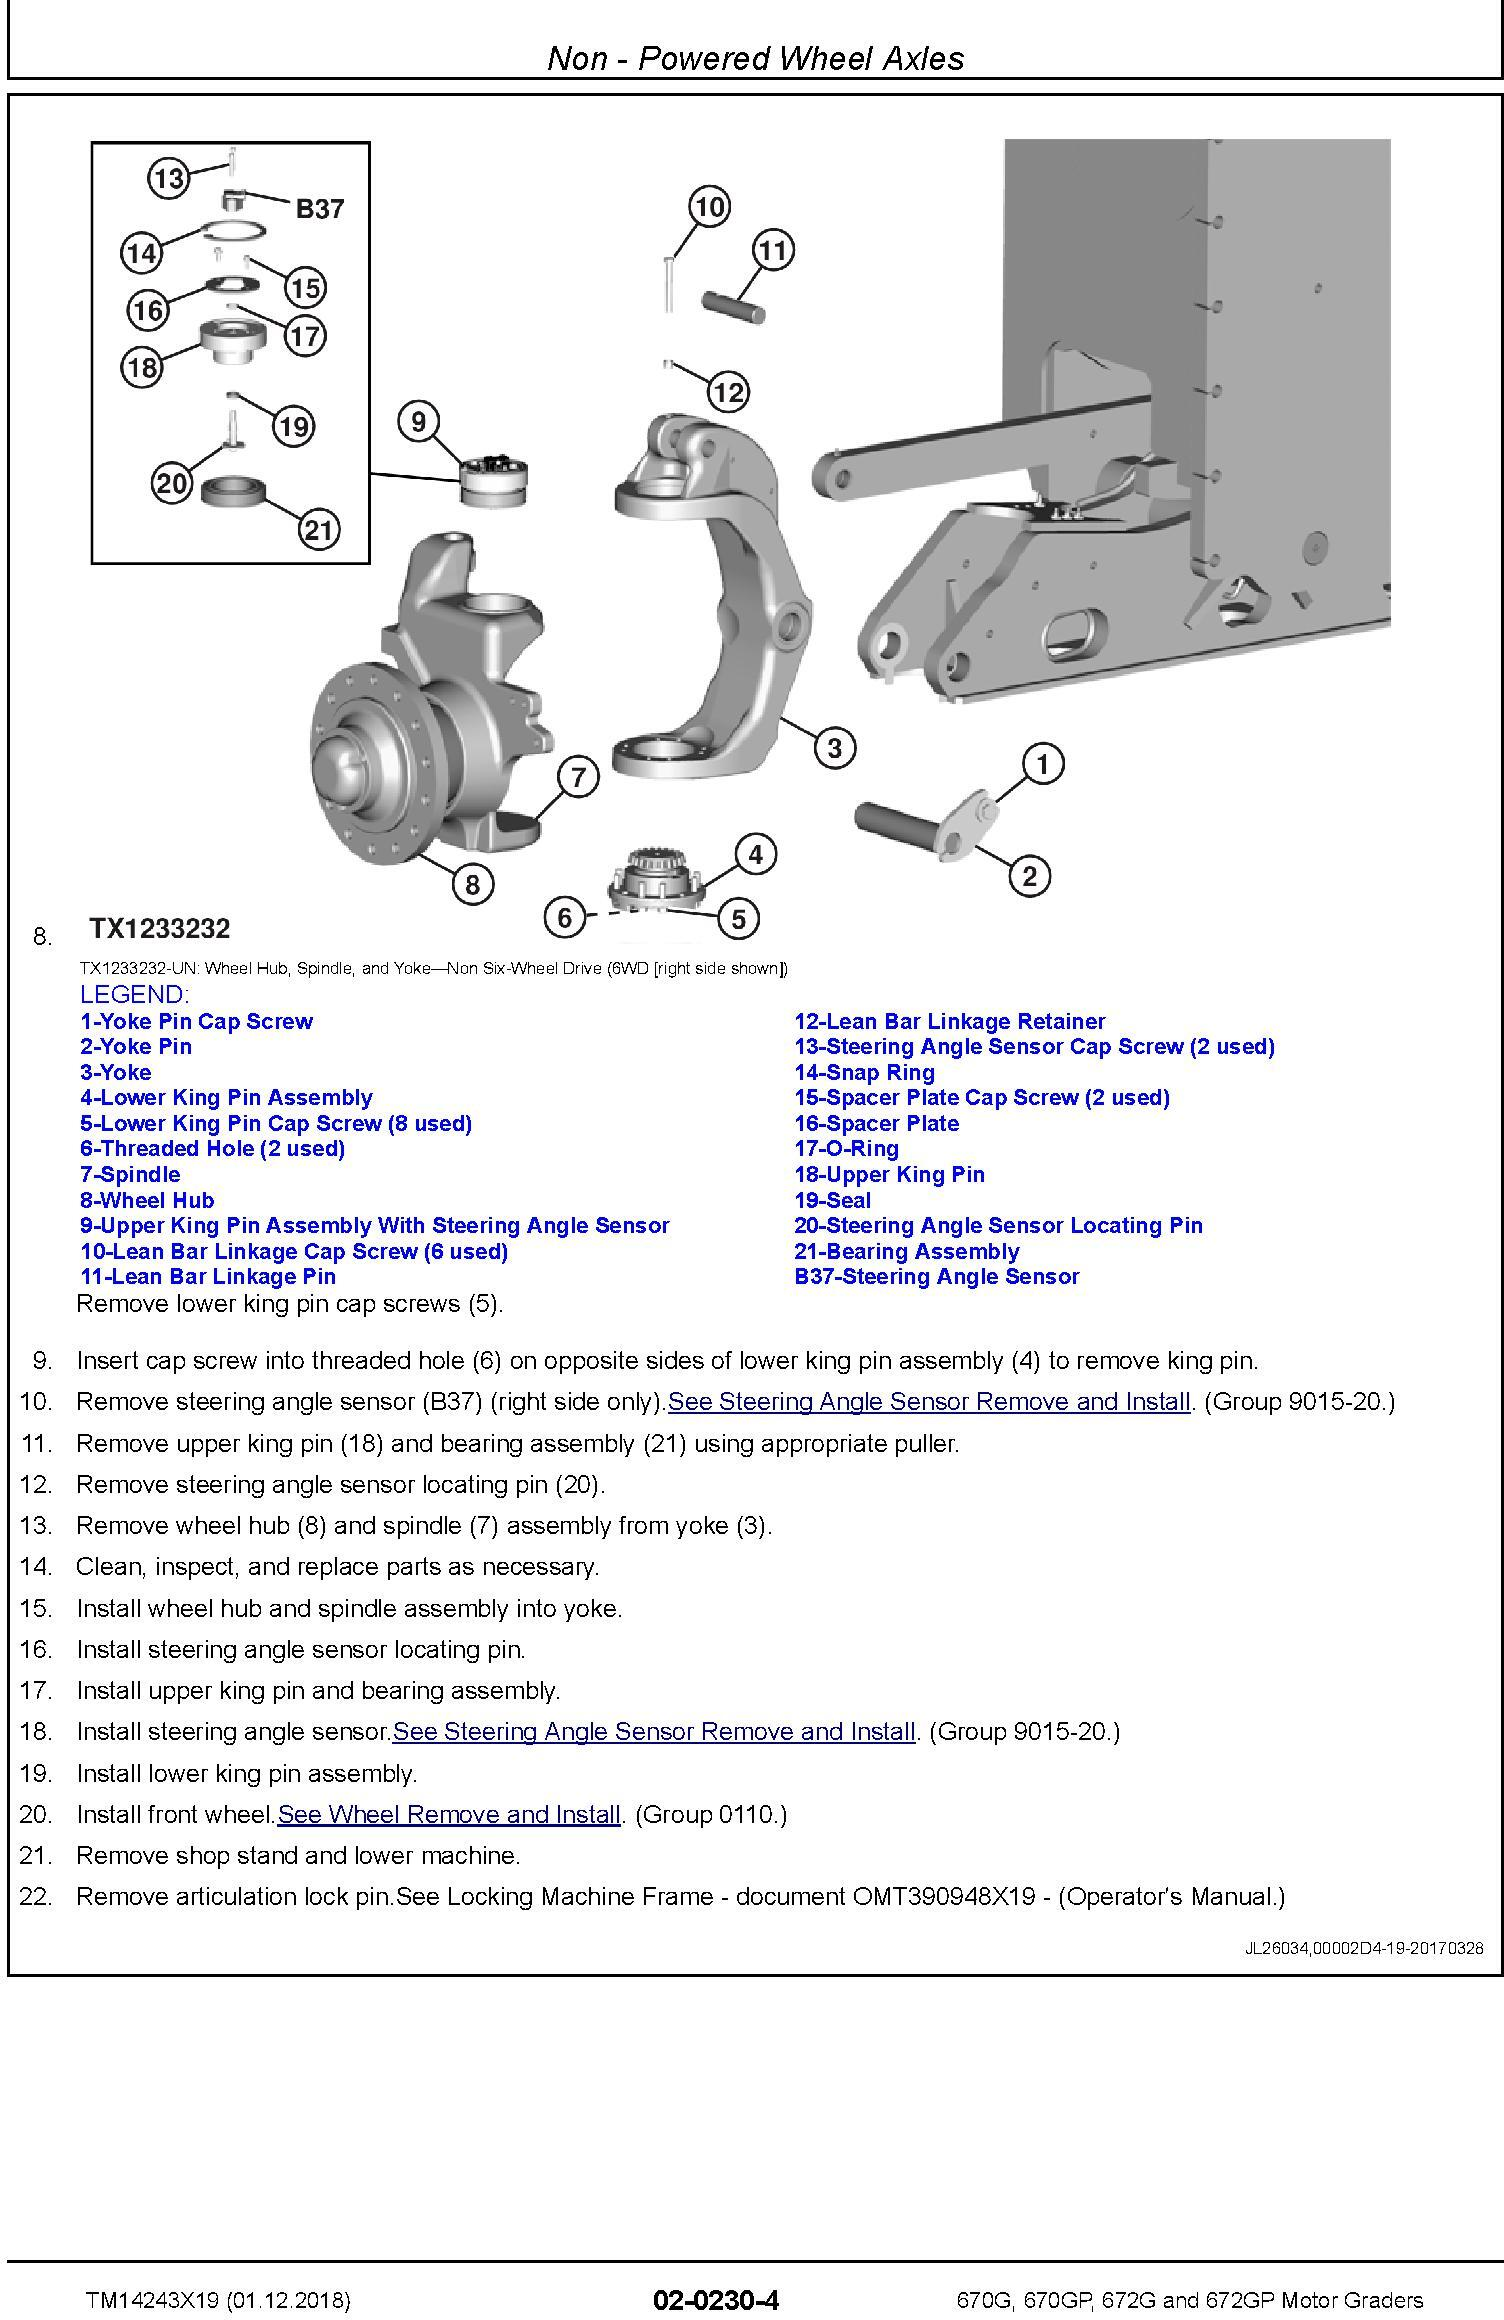 John Deere 670G, 670GP, 672G, 672GP (SN.F680878-, L700954-) Motor Graders Repair Manual (TM14243X19) - 1